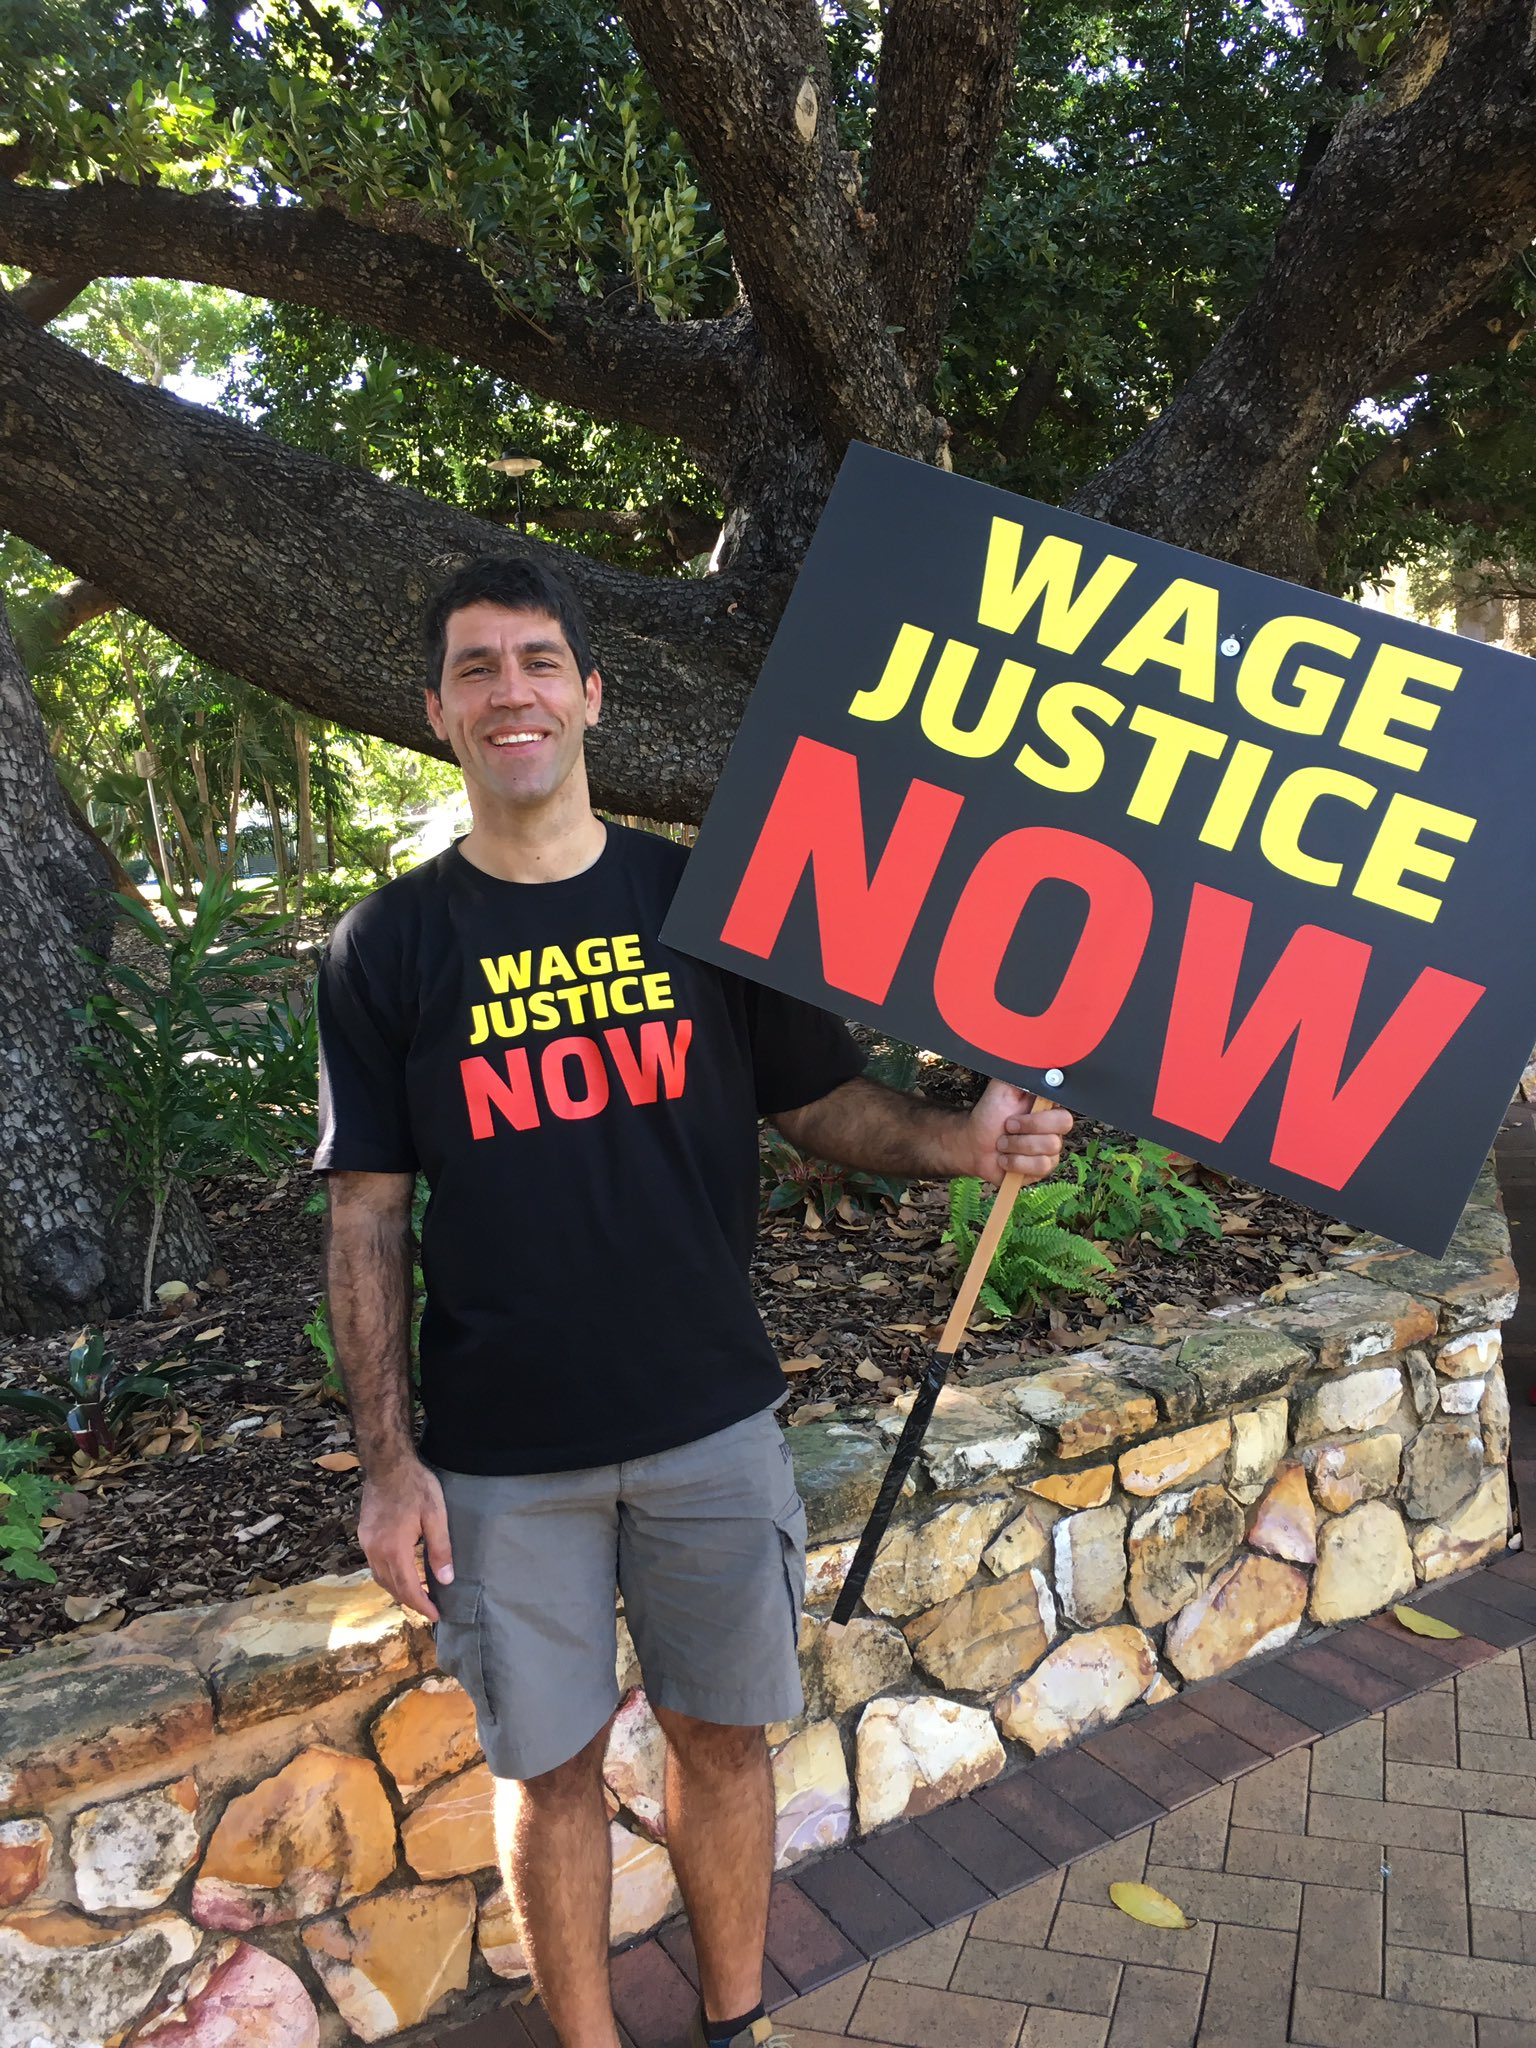 160815 wage justice now corey ah chee